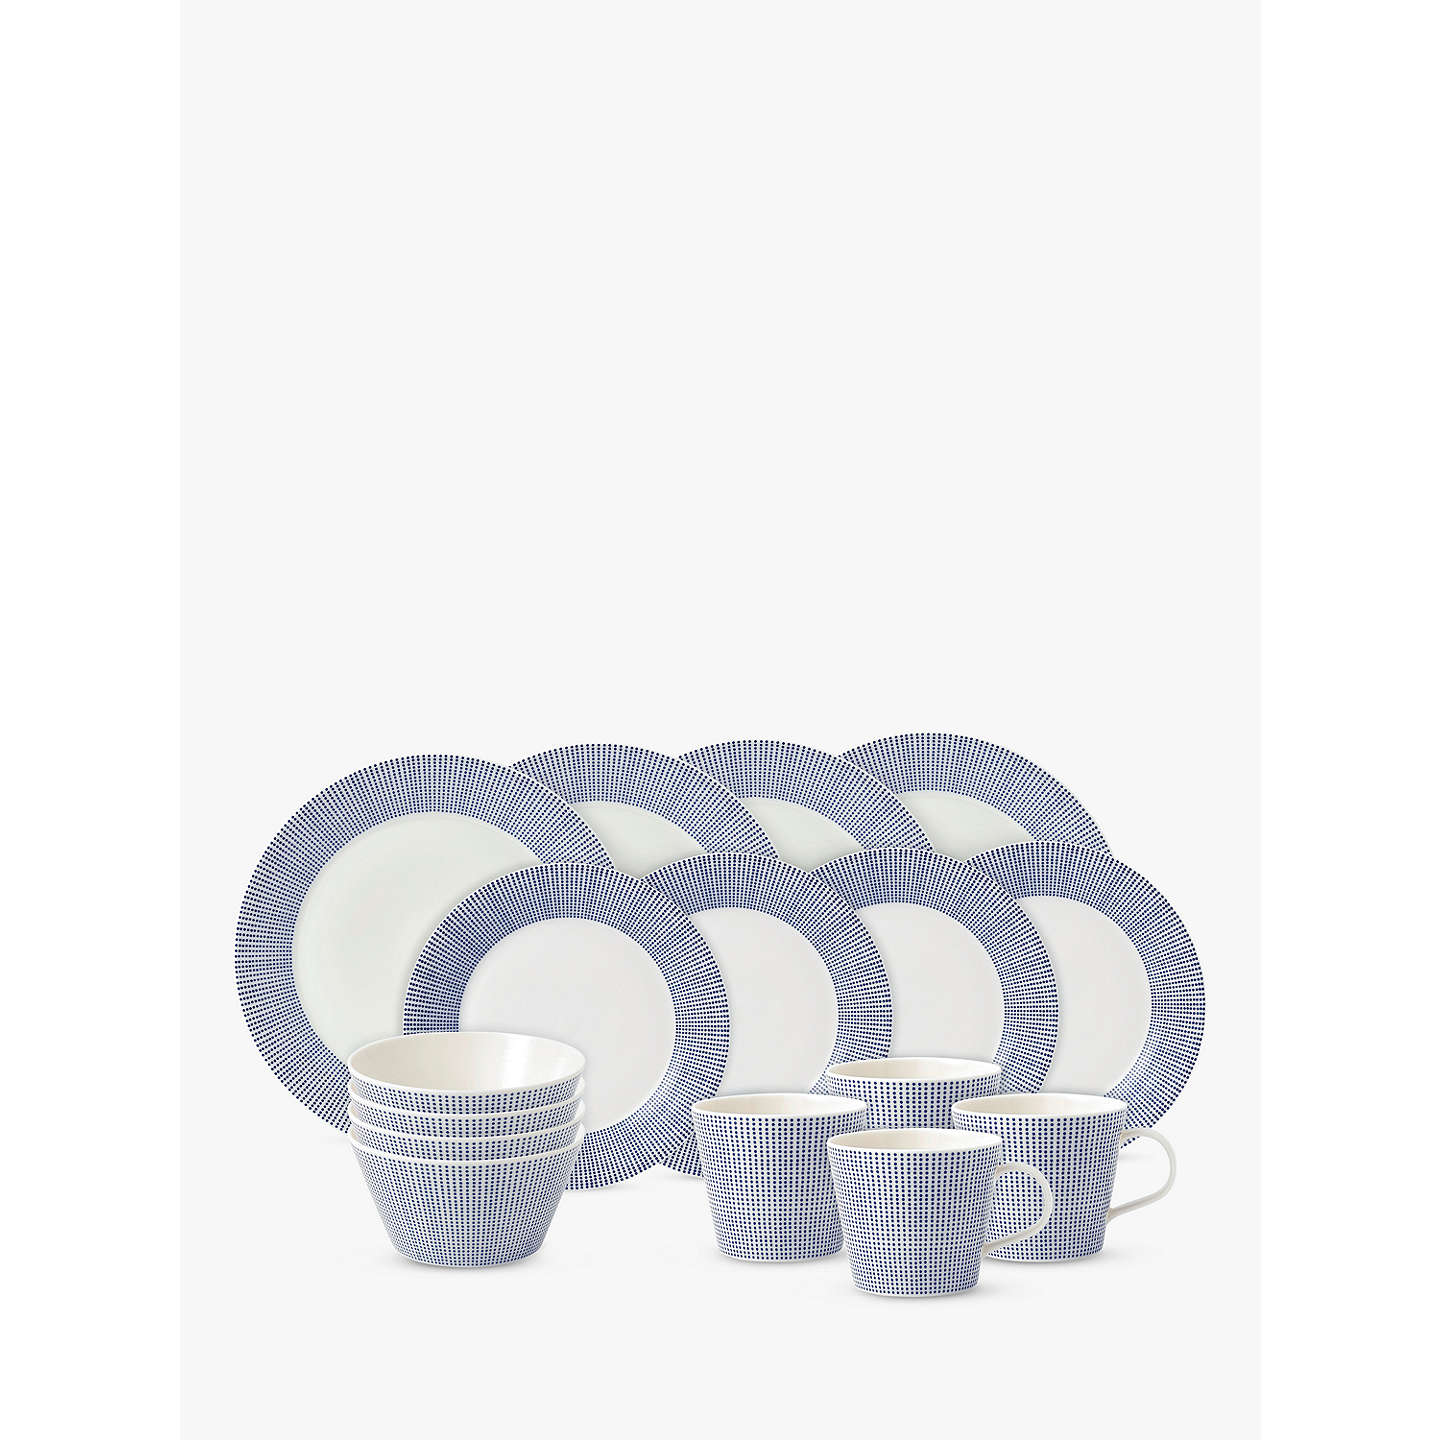 BuyRoyal Doulton Pacific Porcelain China Dinnerware Set Blue 16 Pieces Online at johnlewis.  sc 1 st  John Lewis & Royal Doulton Pacific Porcelain China Dinnerware Set Blue 16 ...